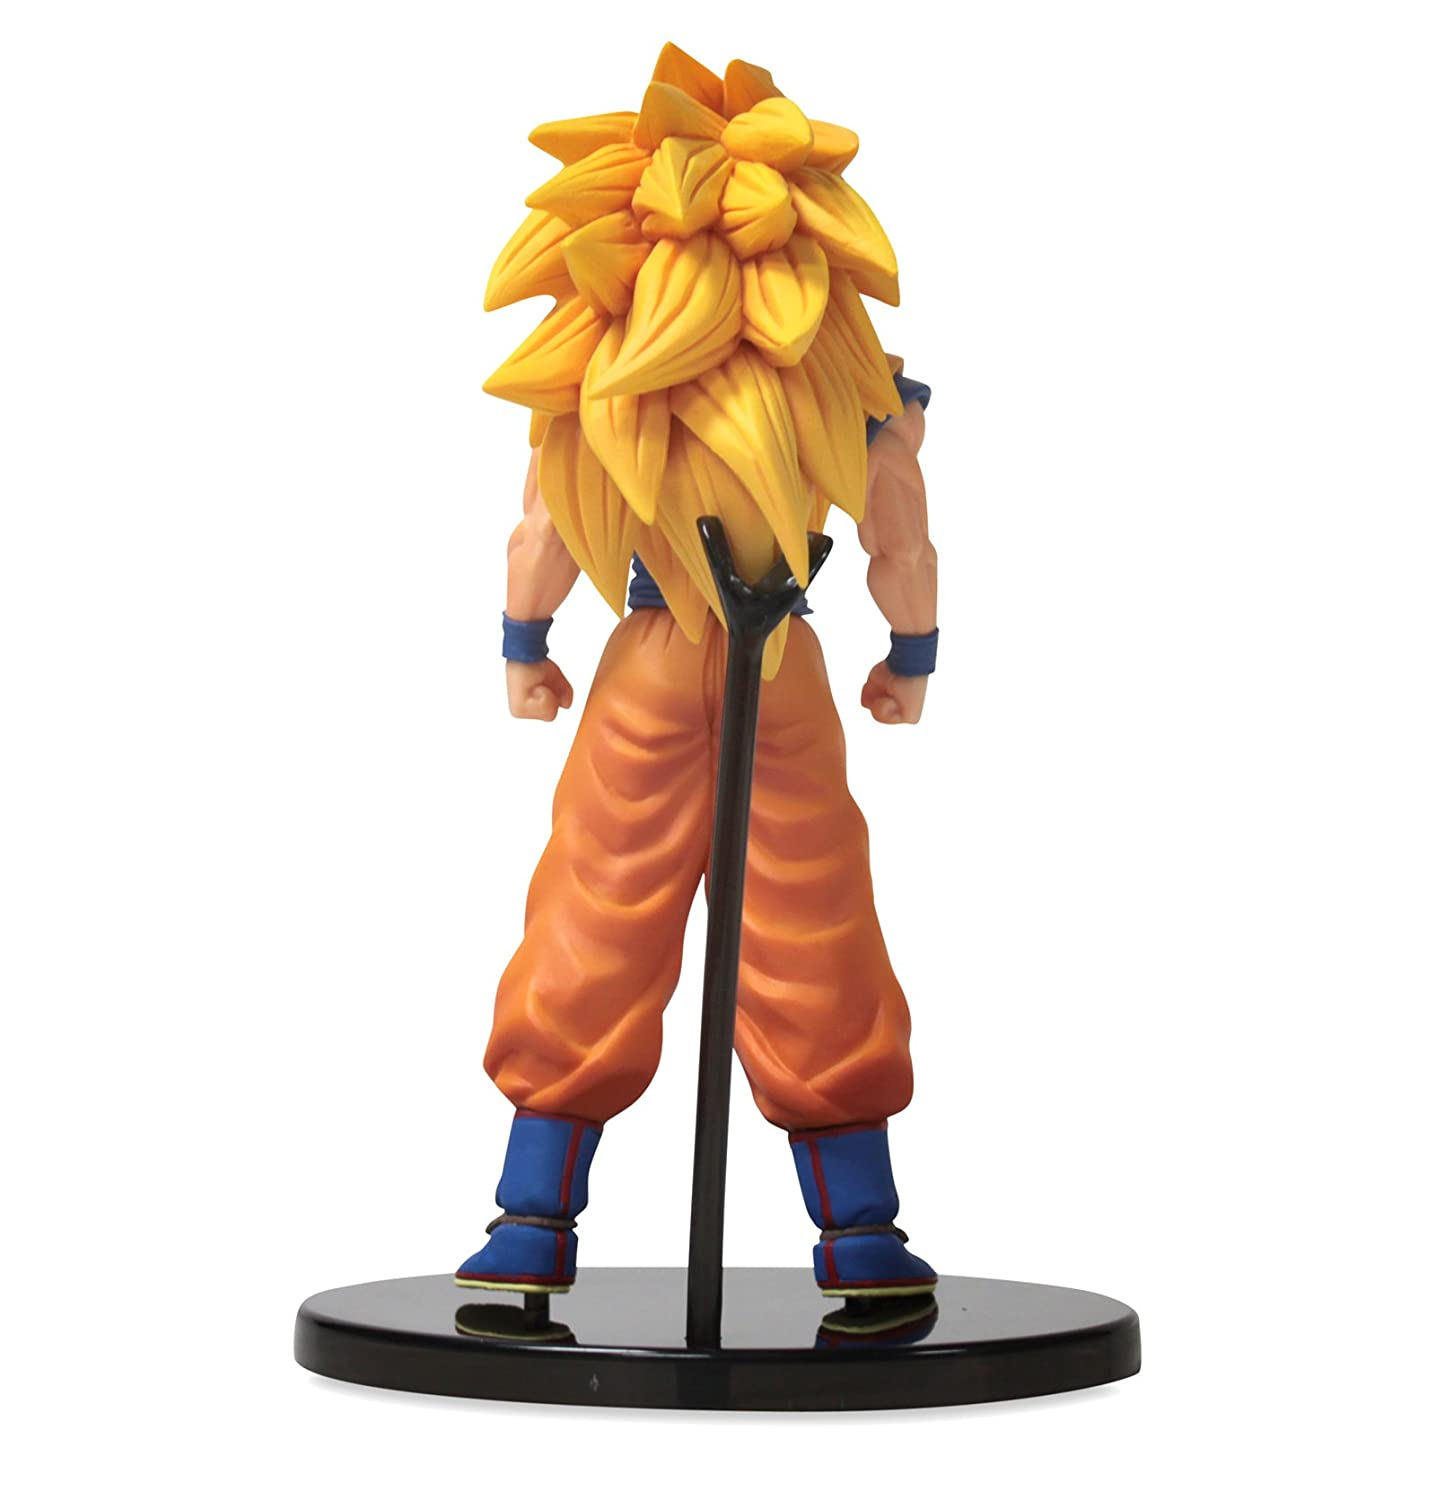 Amazon banpresto dbz dragon ball heroes dxf vol 1 with card amazon banpresto dbz dragon ball heroes dxf vol 1 with card 65 super saiyan 3 son goku action figure toys games thecheapjerseys Image collections